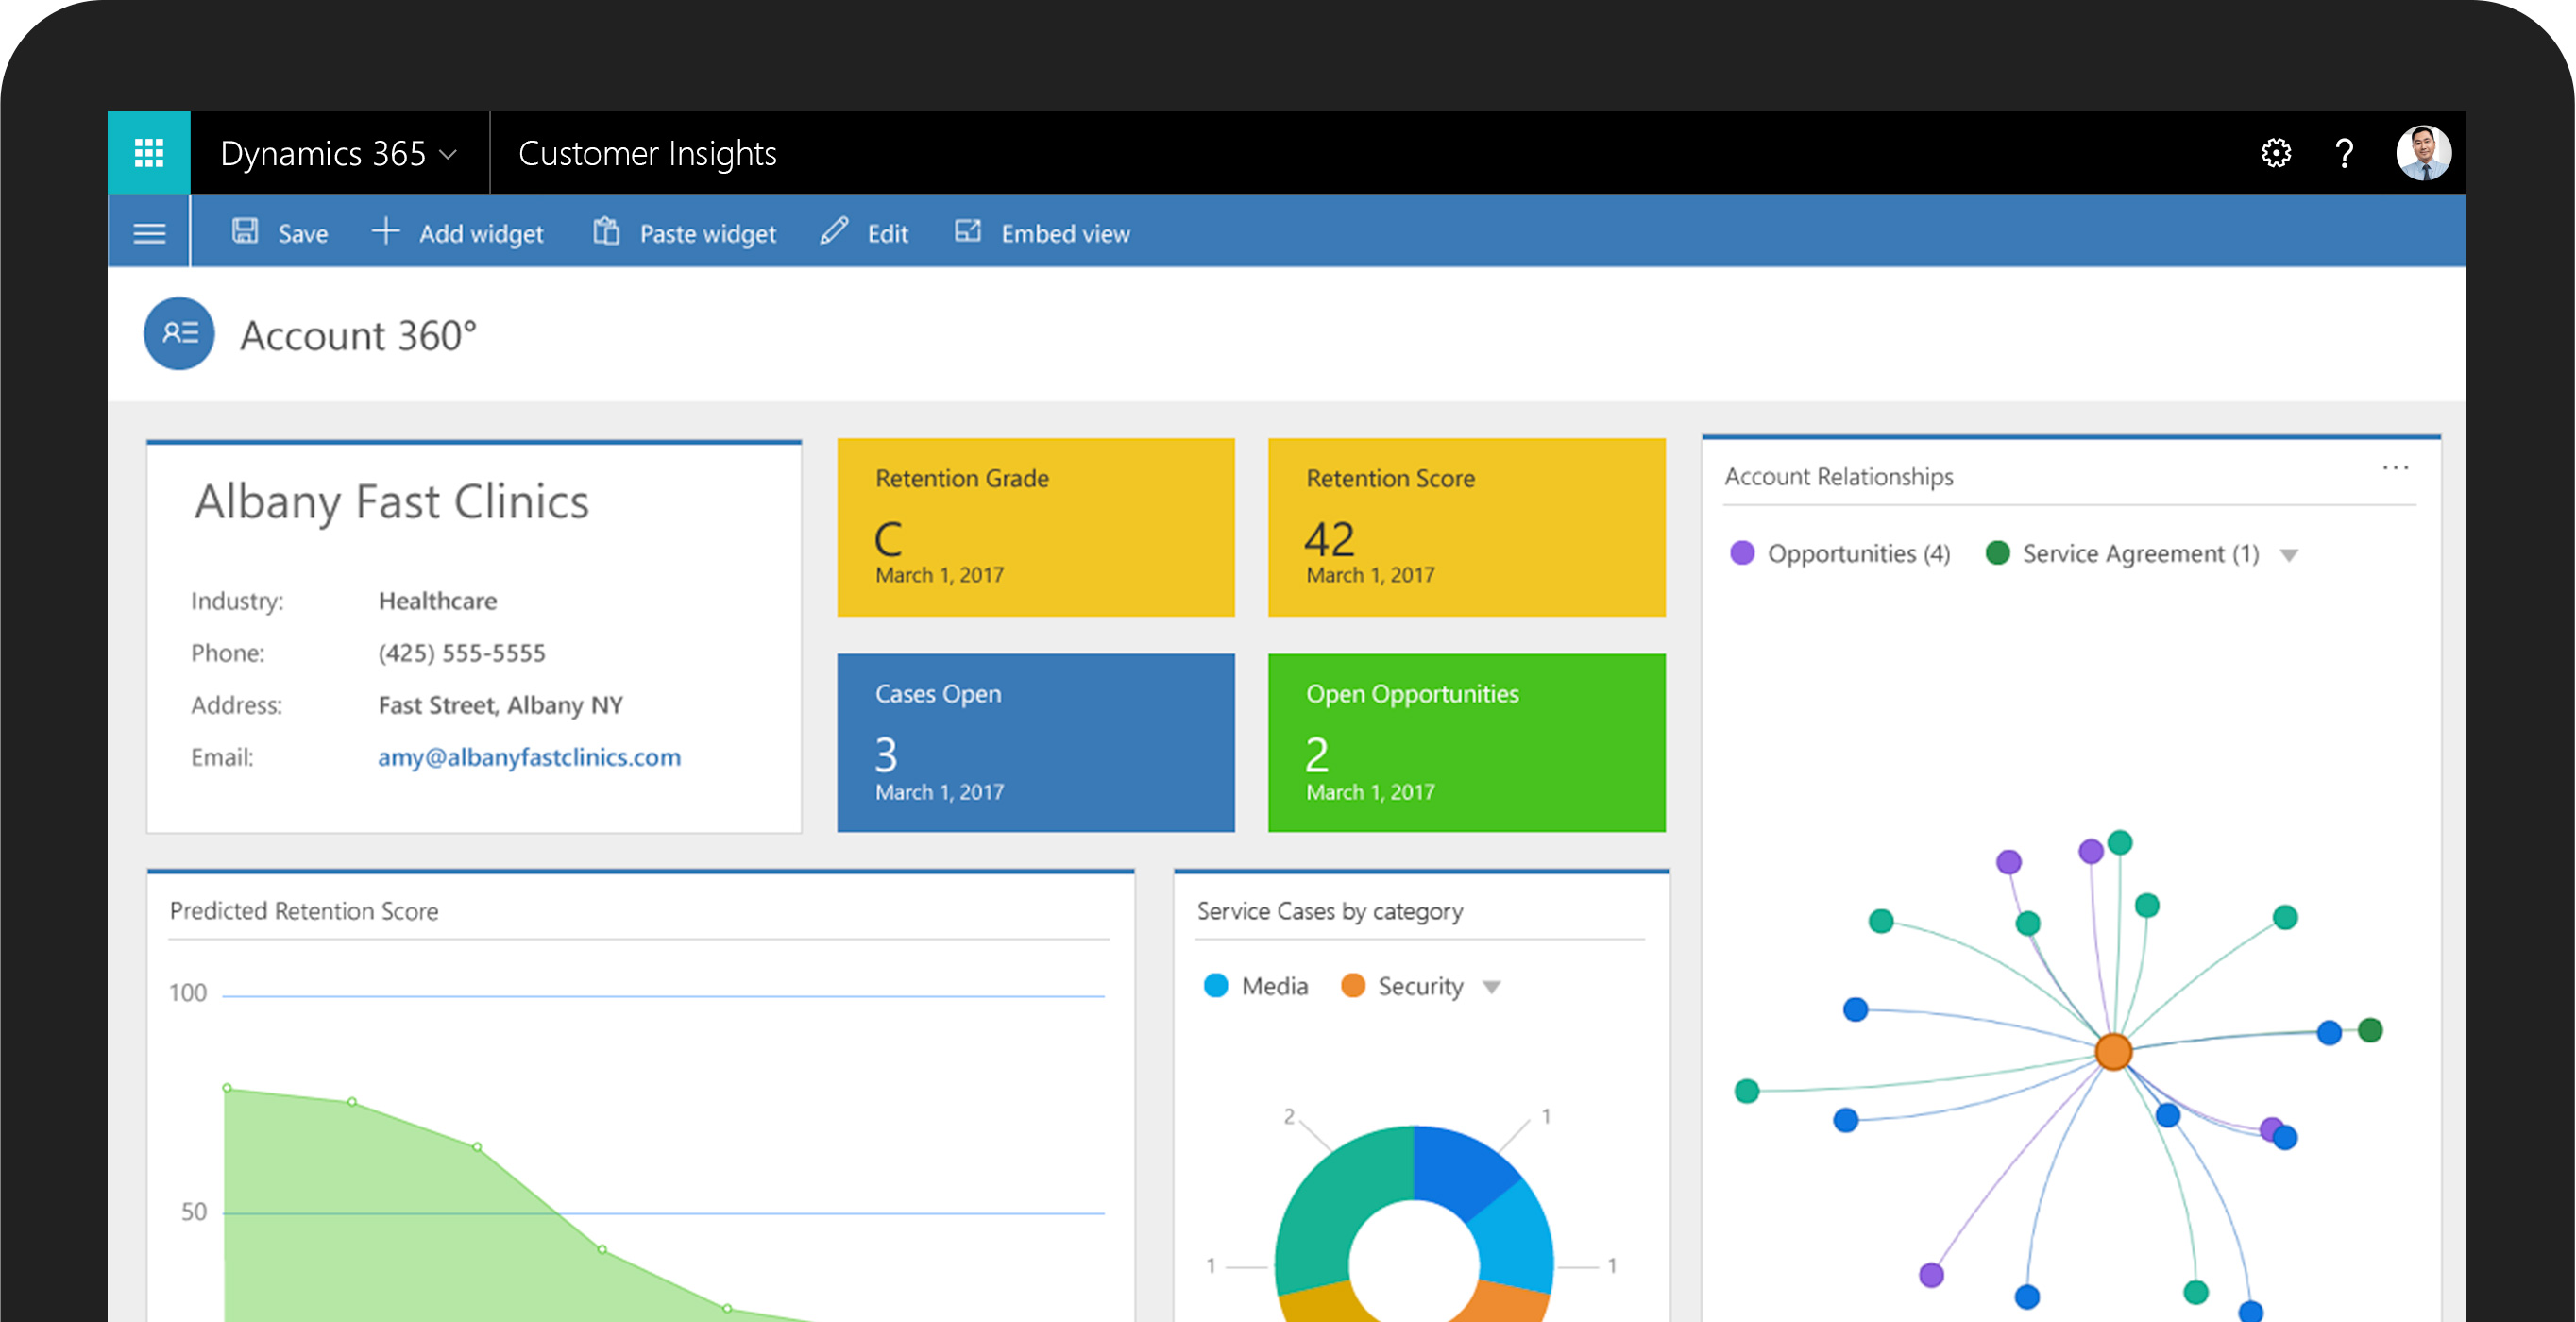 Product screenshot showing Account 360 degree of Dynamics 365 Customer Insights